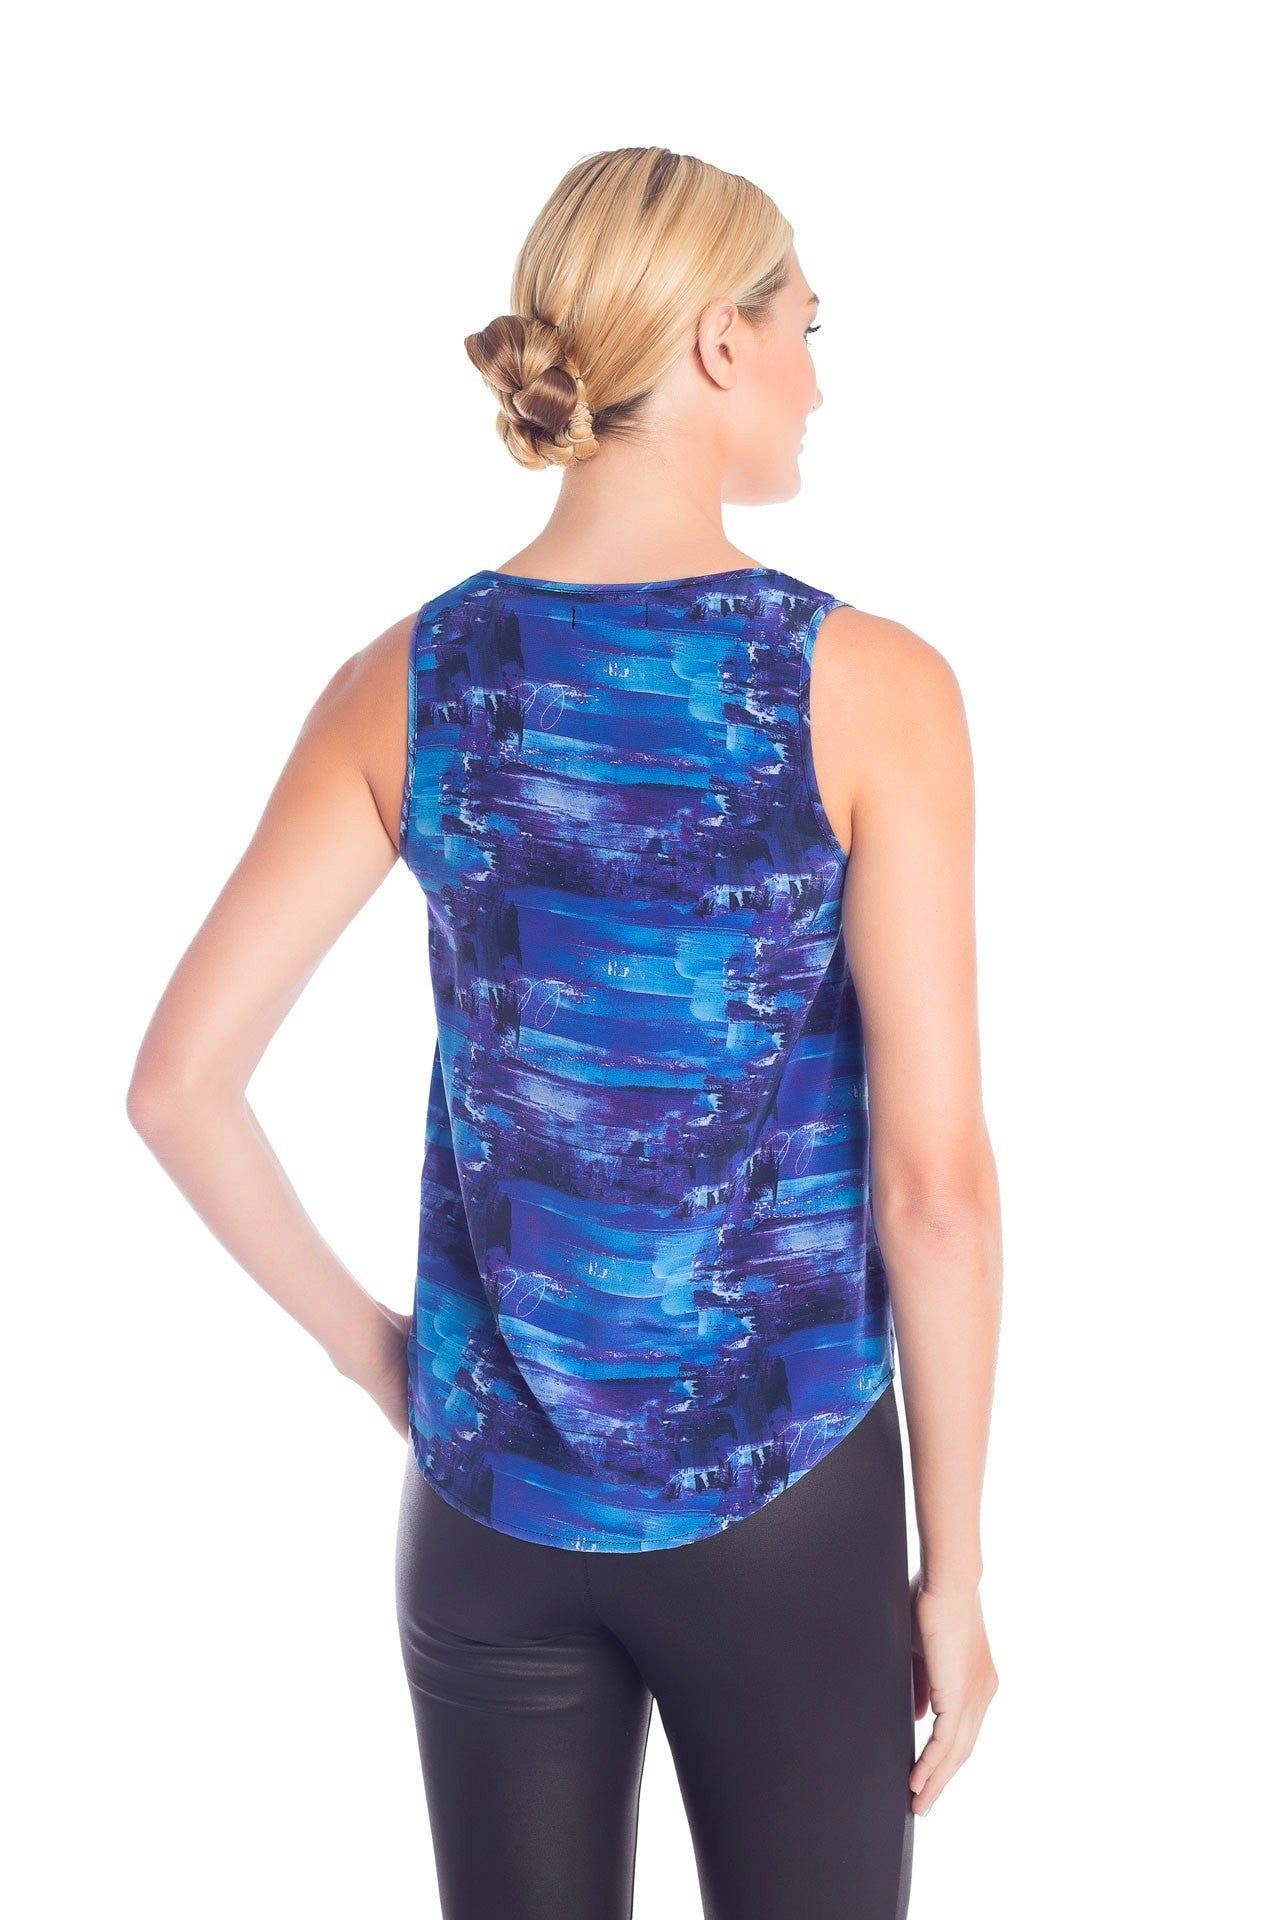 Kinetic Silk Tank Top - Blue Lake Print Tank Tops - artTECA